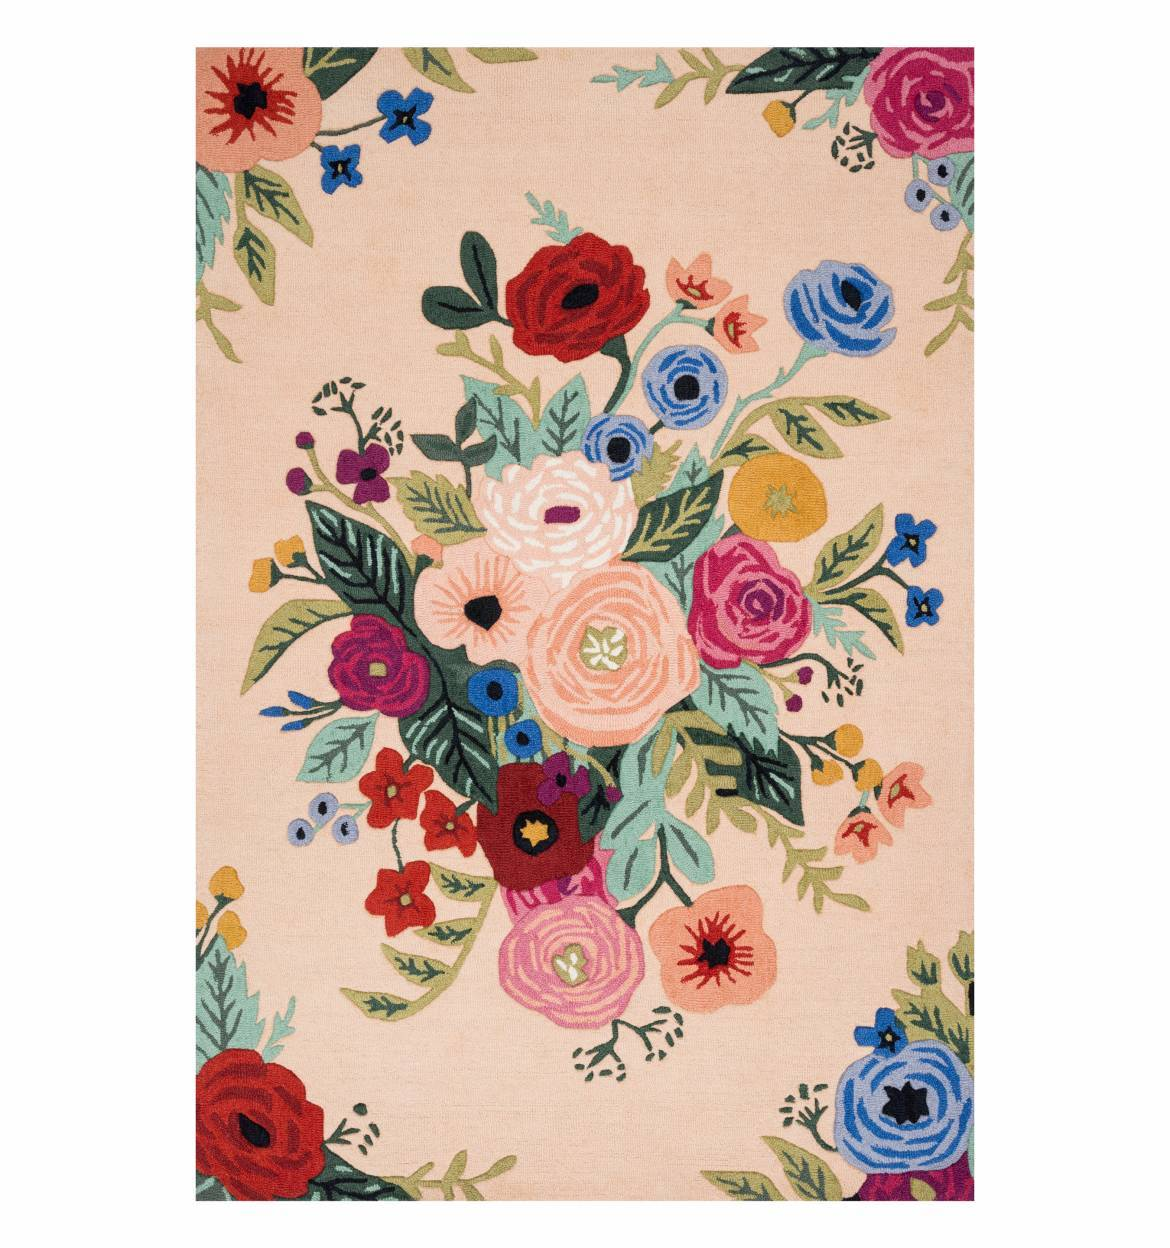 rug005-julietrosebouquet-blush-01_2